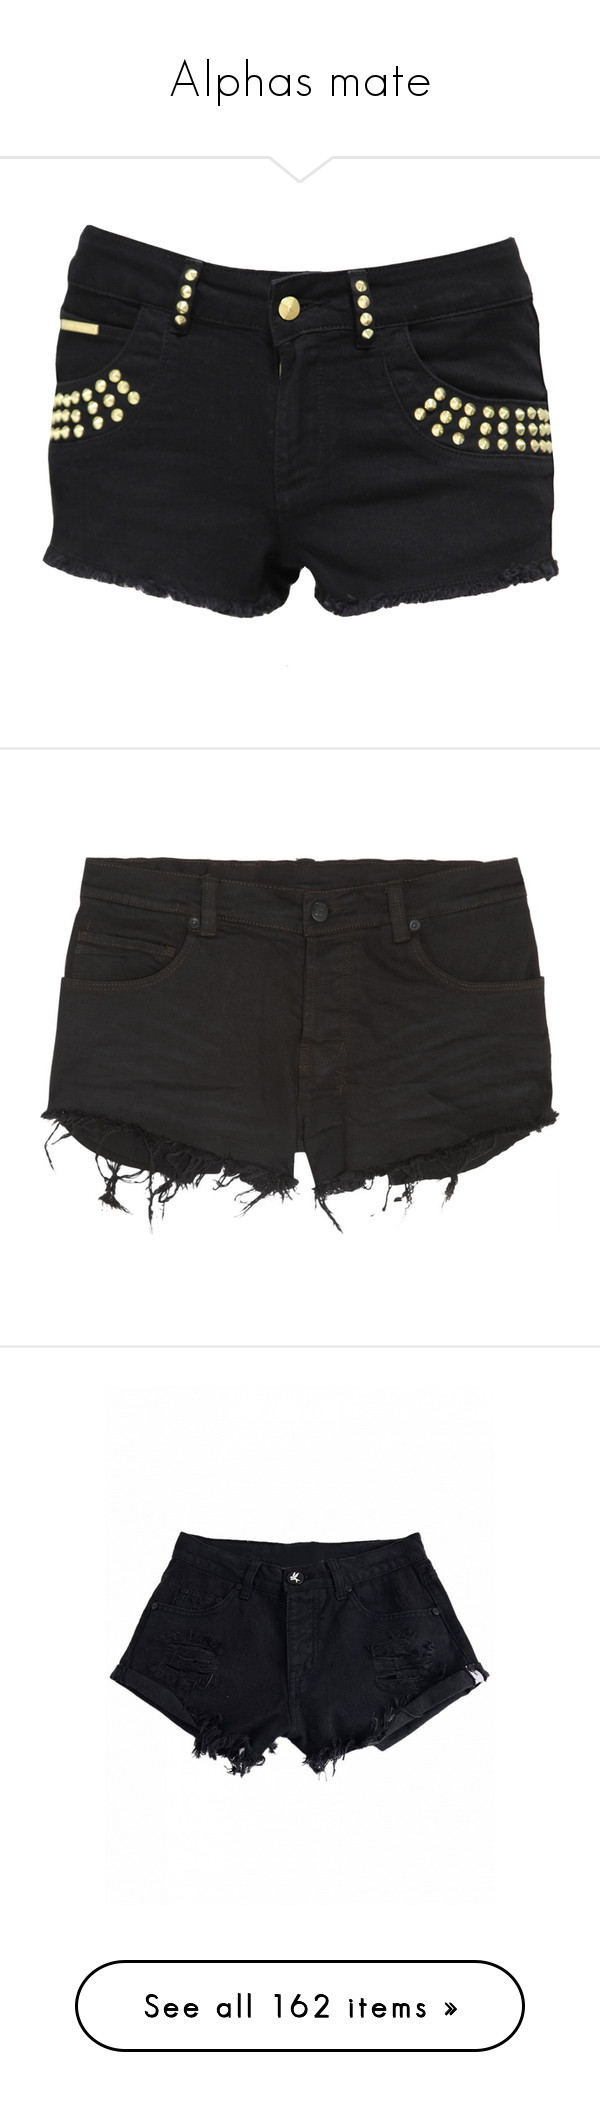 """Alphas mate"" by sara598d on Polyvore featuring shorts, bottoms, pants, short, black, button fly shorts, denim shorts, jane norman, denim short shorts and jean shorts"